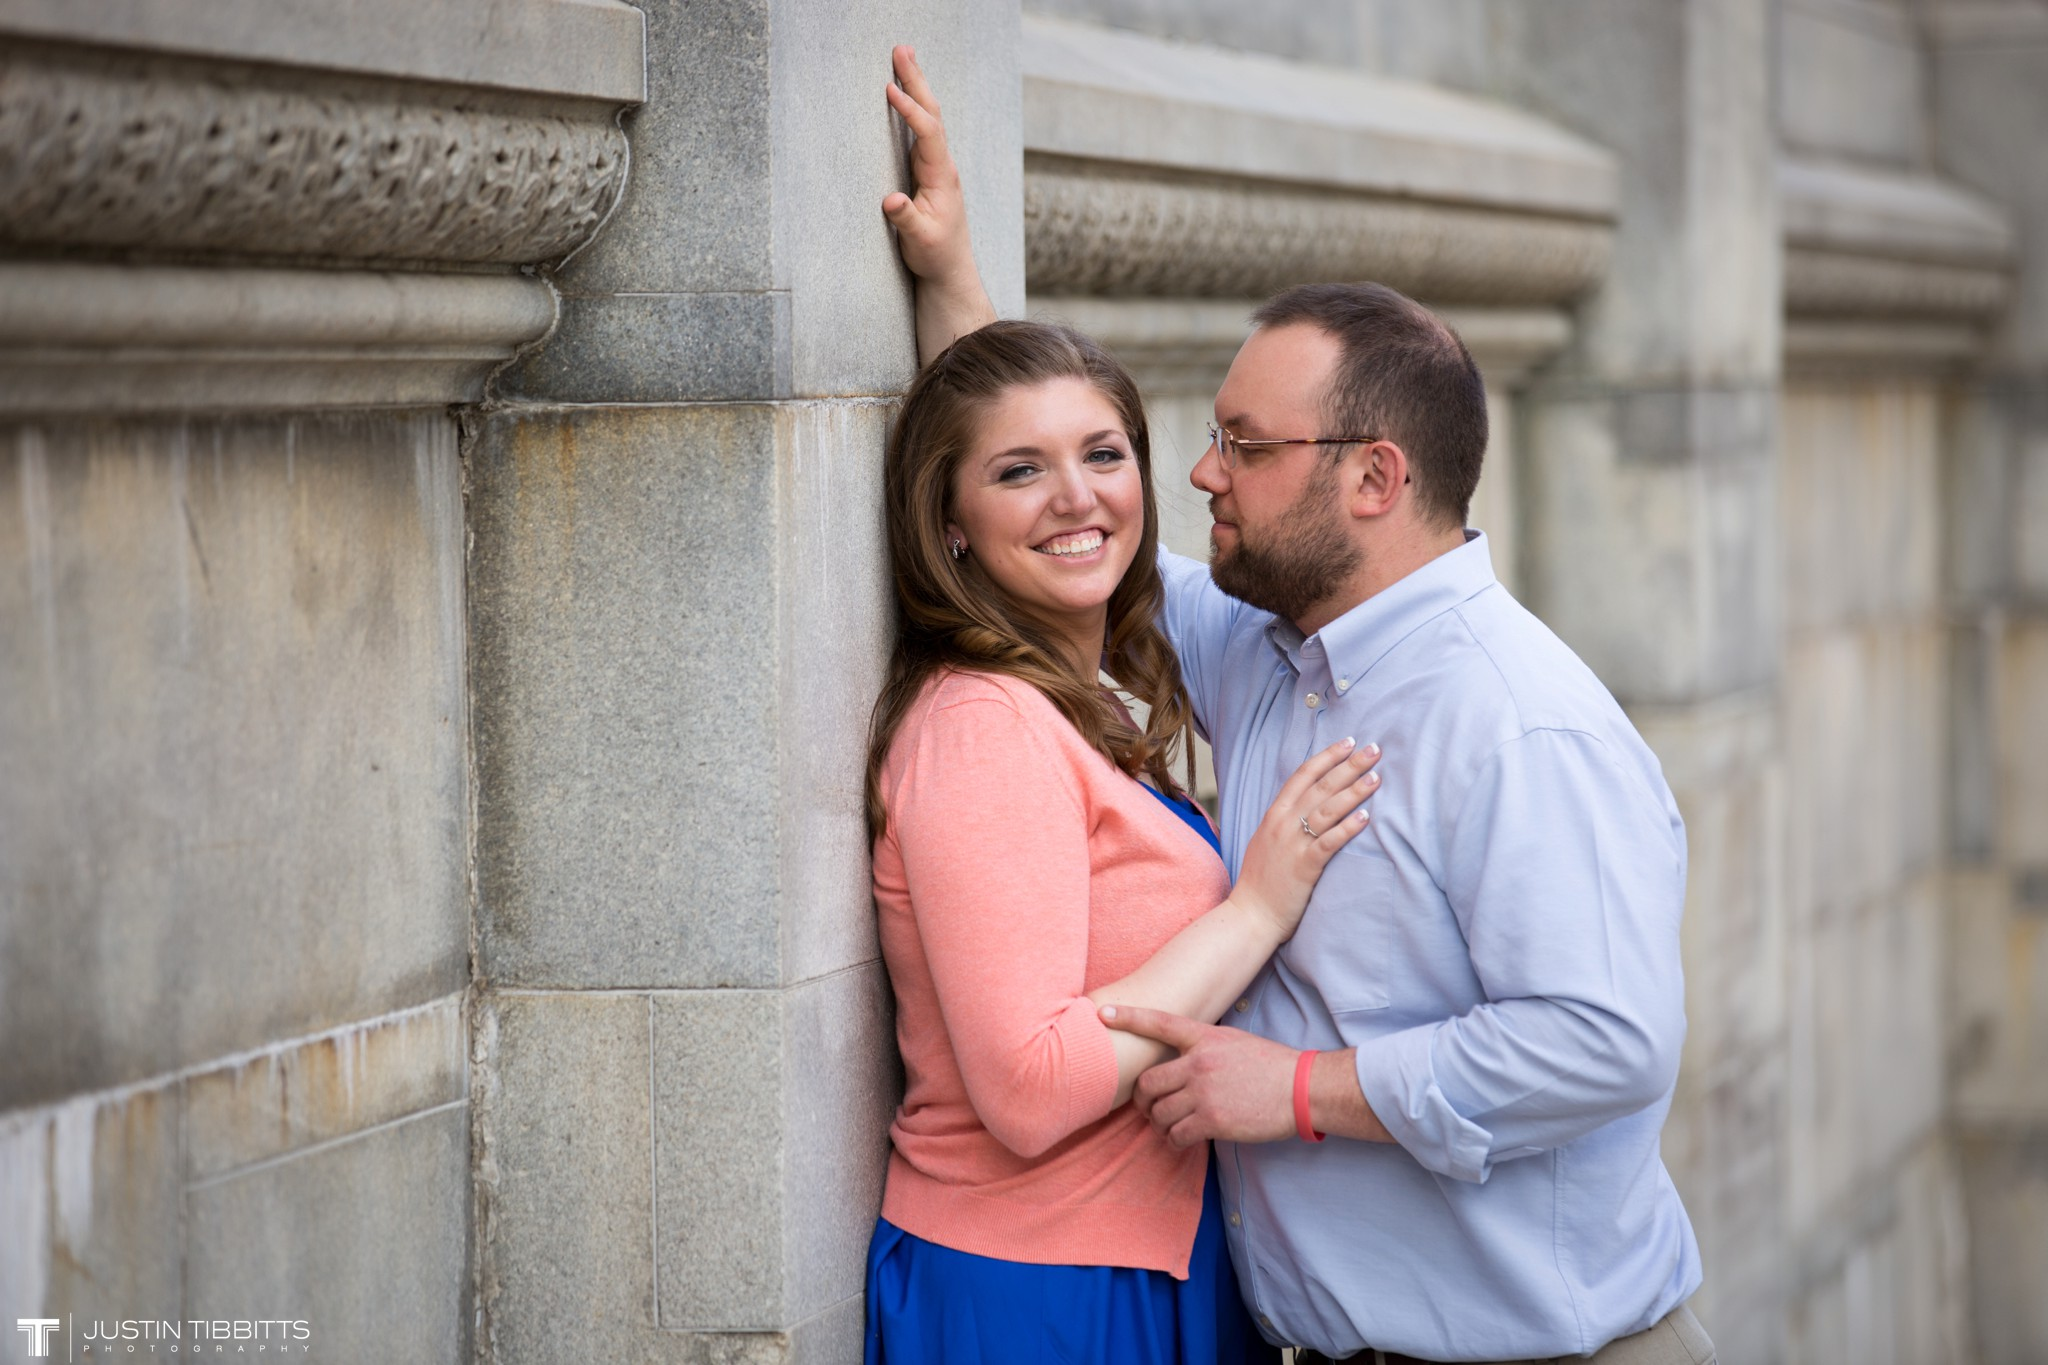 Justin Tibbitts Photography Sara and Erics Albany NY Engagement Photoshoot-41